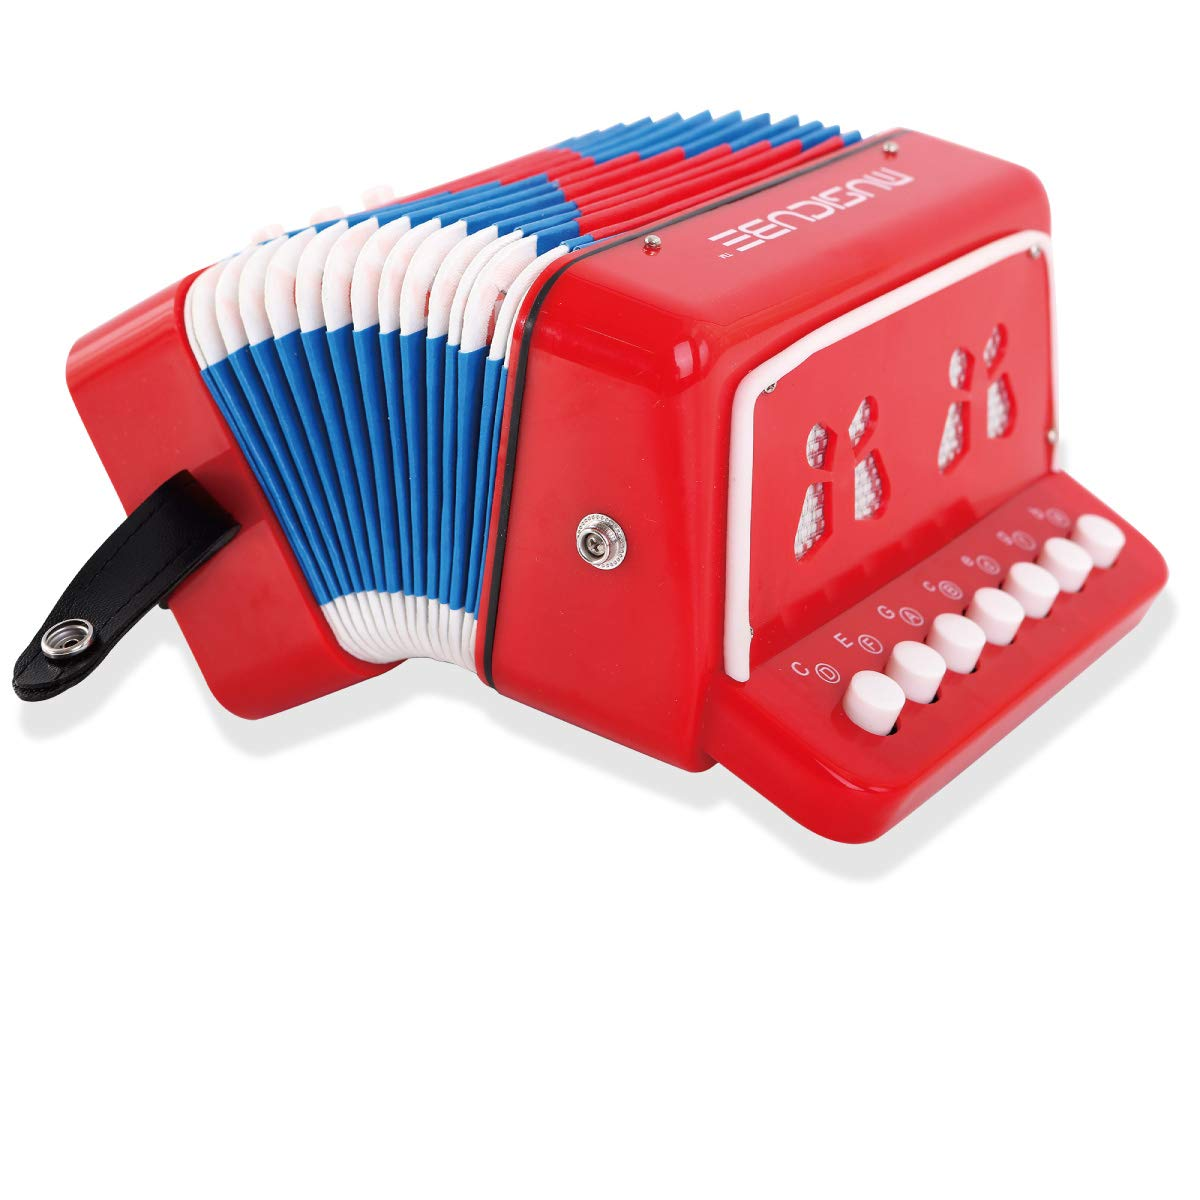 Blue Solo and Ensemble Kids Toy Accordion Musical Instrument for Early Childhood Teaching MUSICUBE 10 Keys Accordion